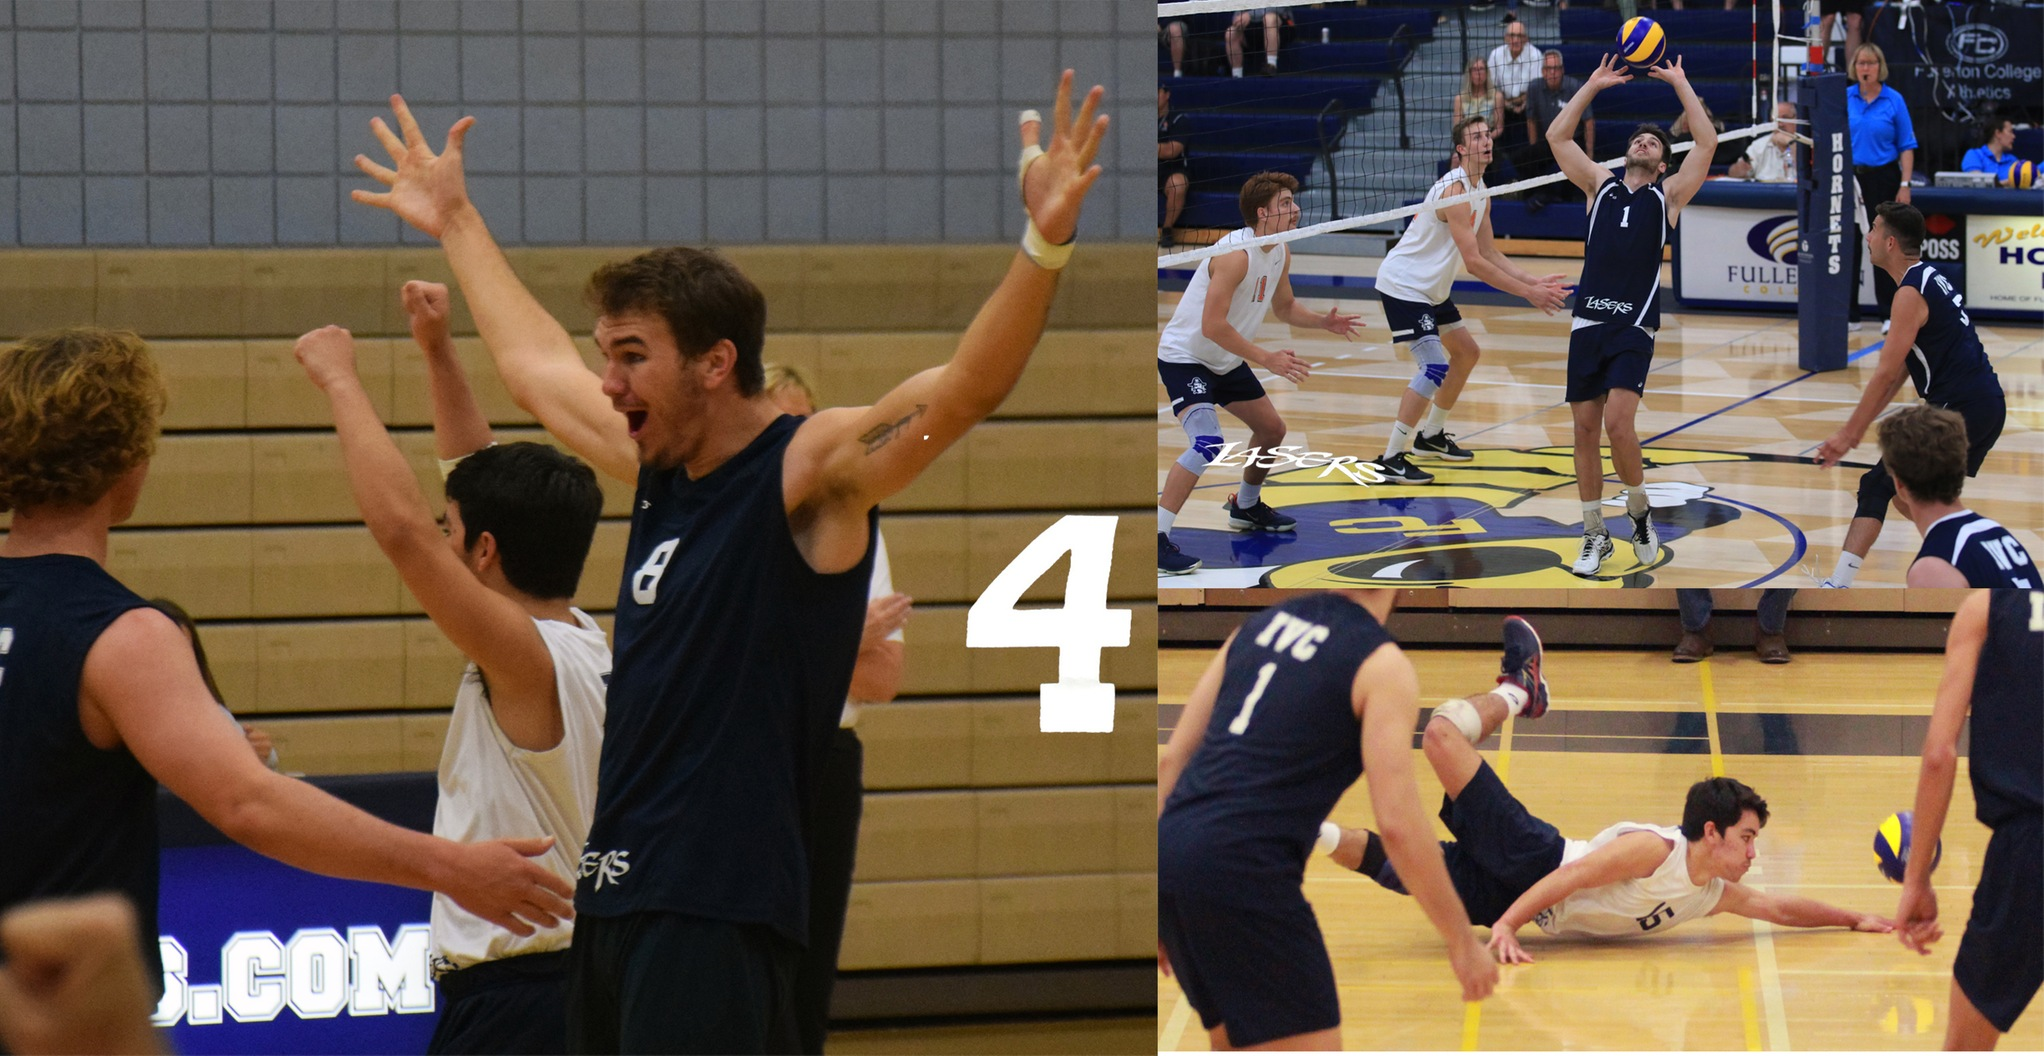 No. 4 Story of the Year - Men's volleyball team gets to state